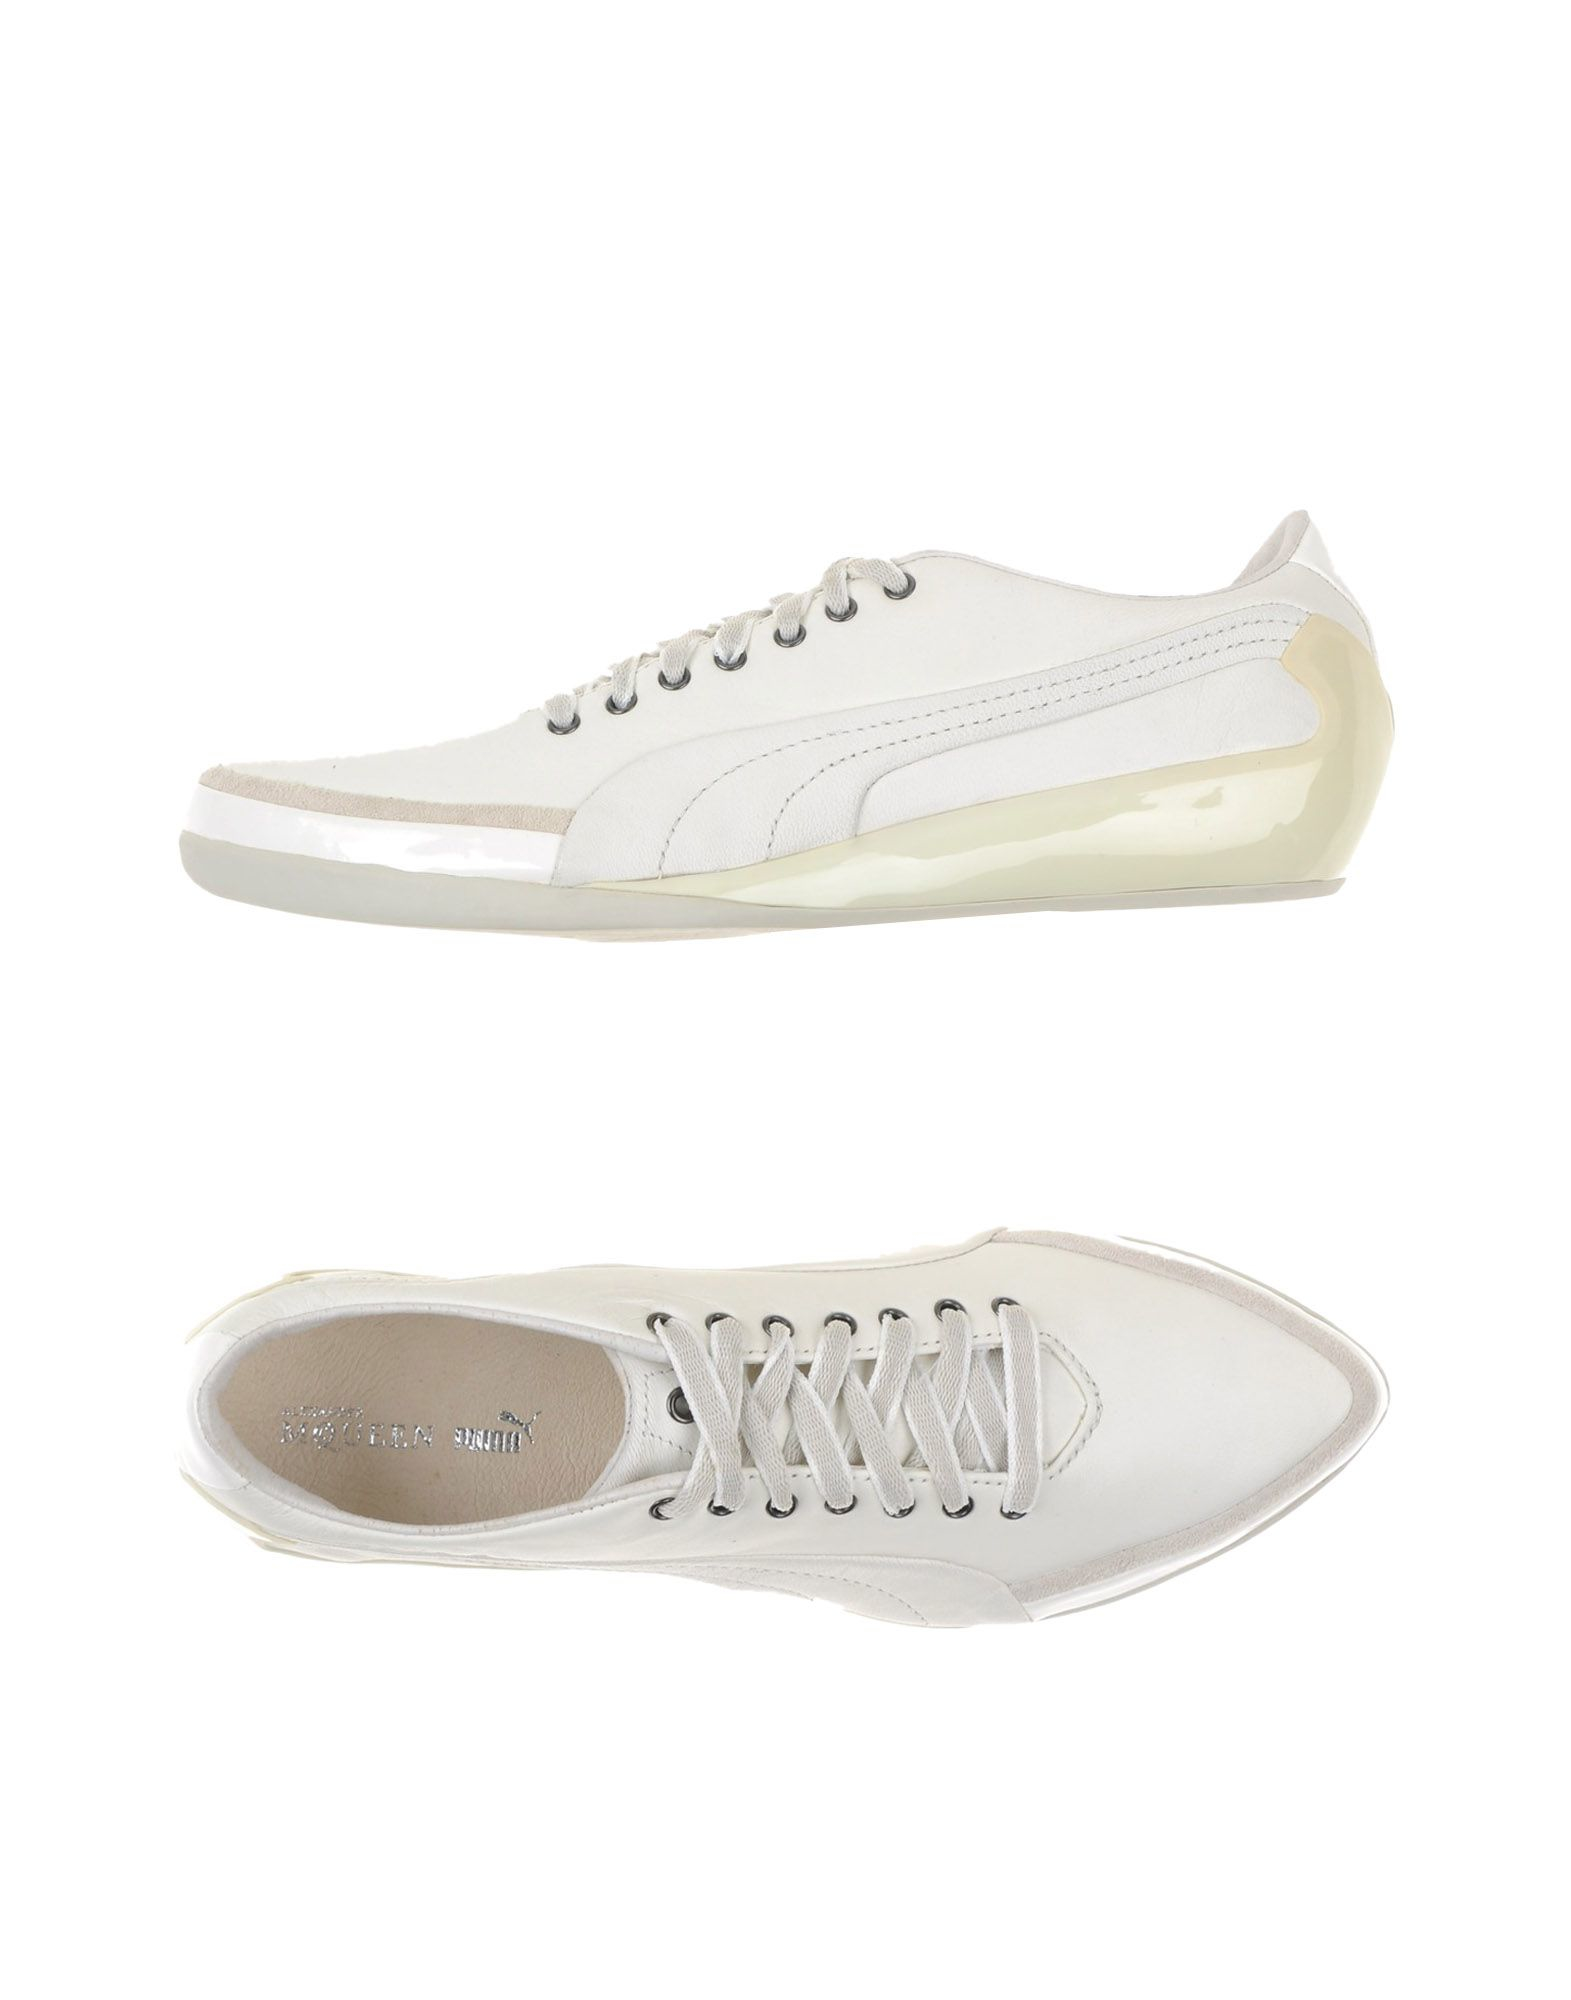 Outlet 2018 T.U.K. Original Footwear Pointed Low Wingtip Creeper -Black and White Leather Cheap Pay With Visa Cheap Price Clearance Pay With Paypal sBmEtU